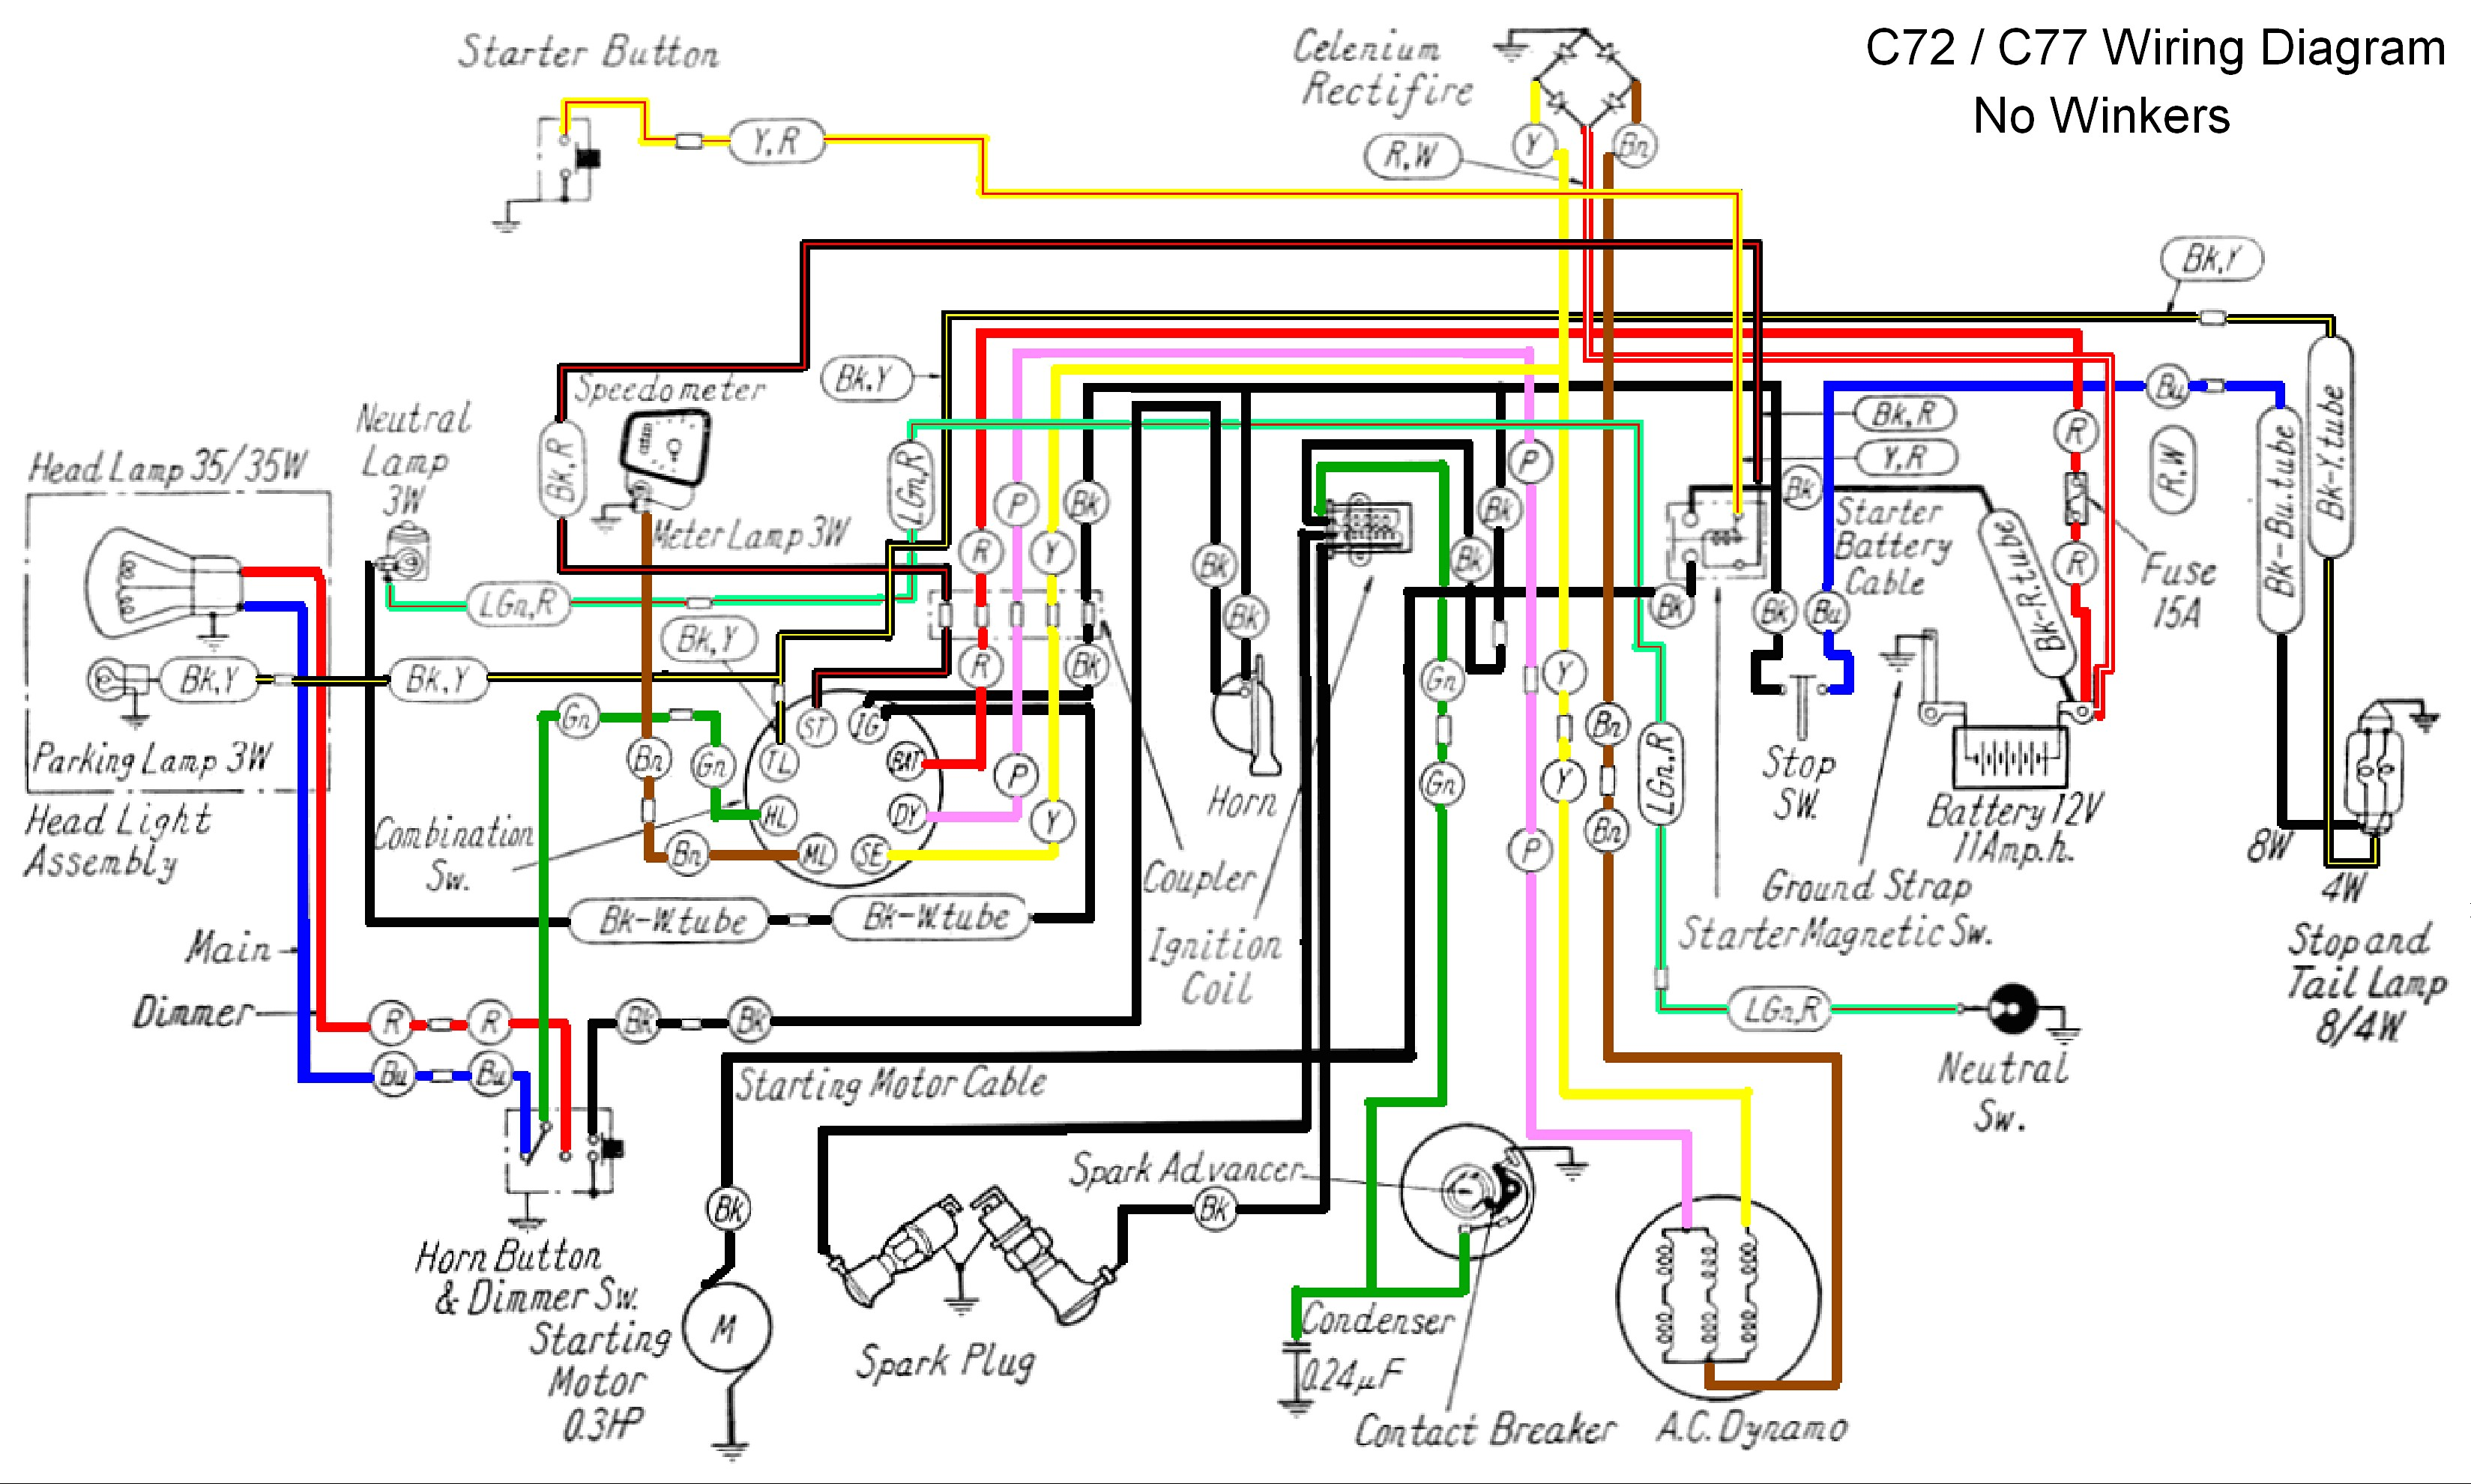 harley wiring diagram 2015 wiring diagram todays rh 16 16 10 1813weddingbarn com 1995 harley fxd [ 3297 x 1980 Pixel ]